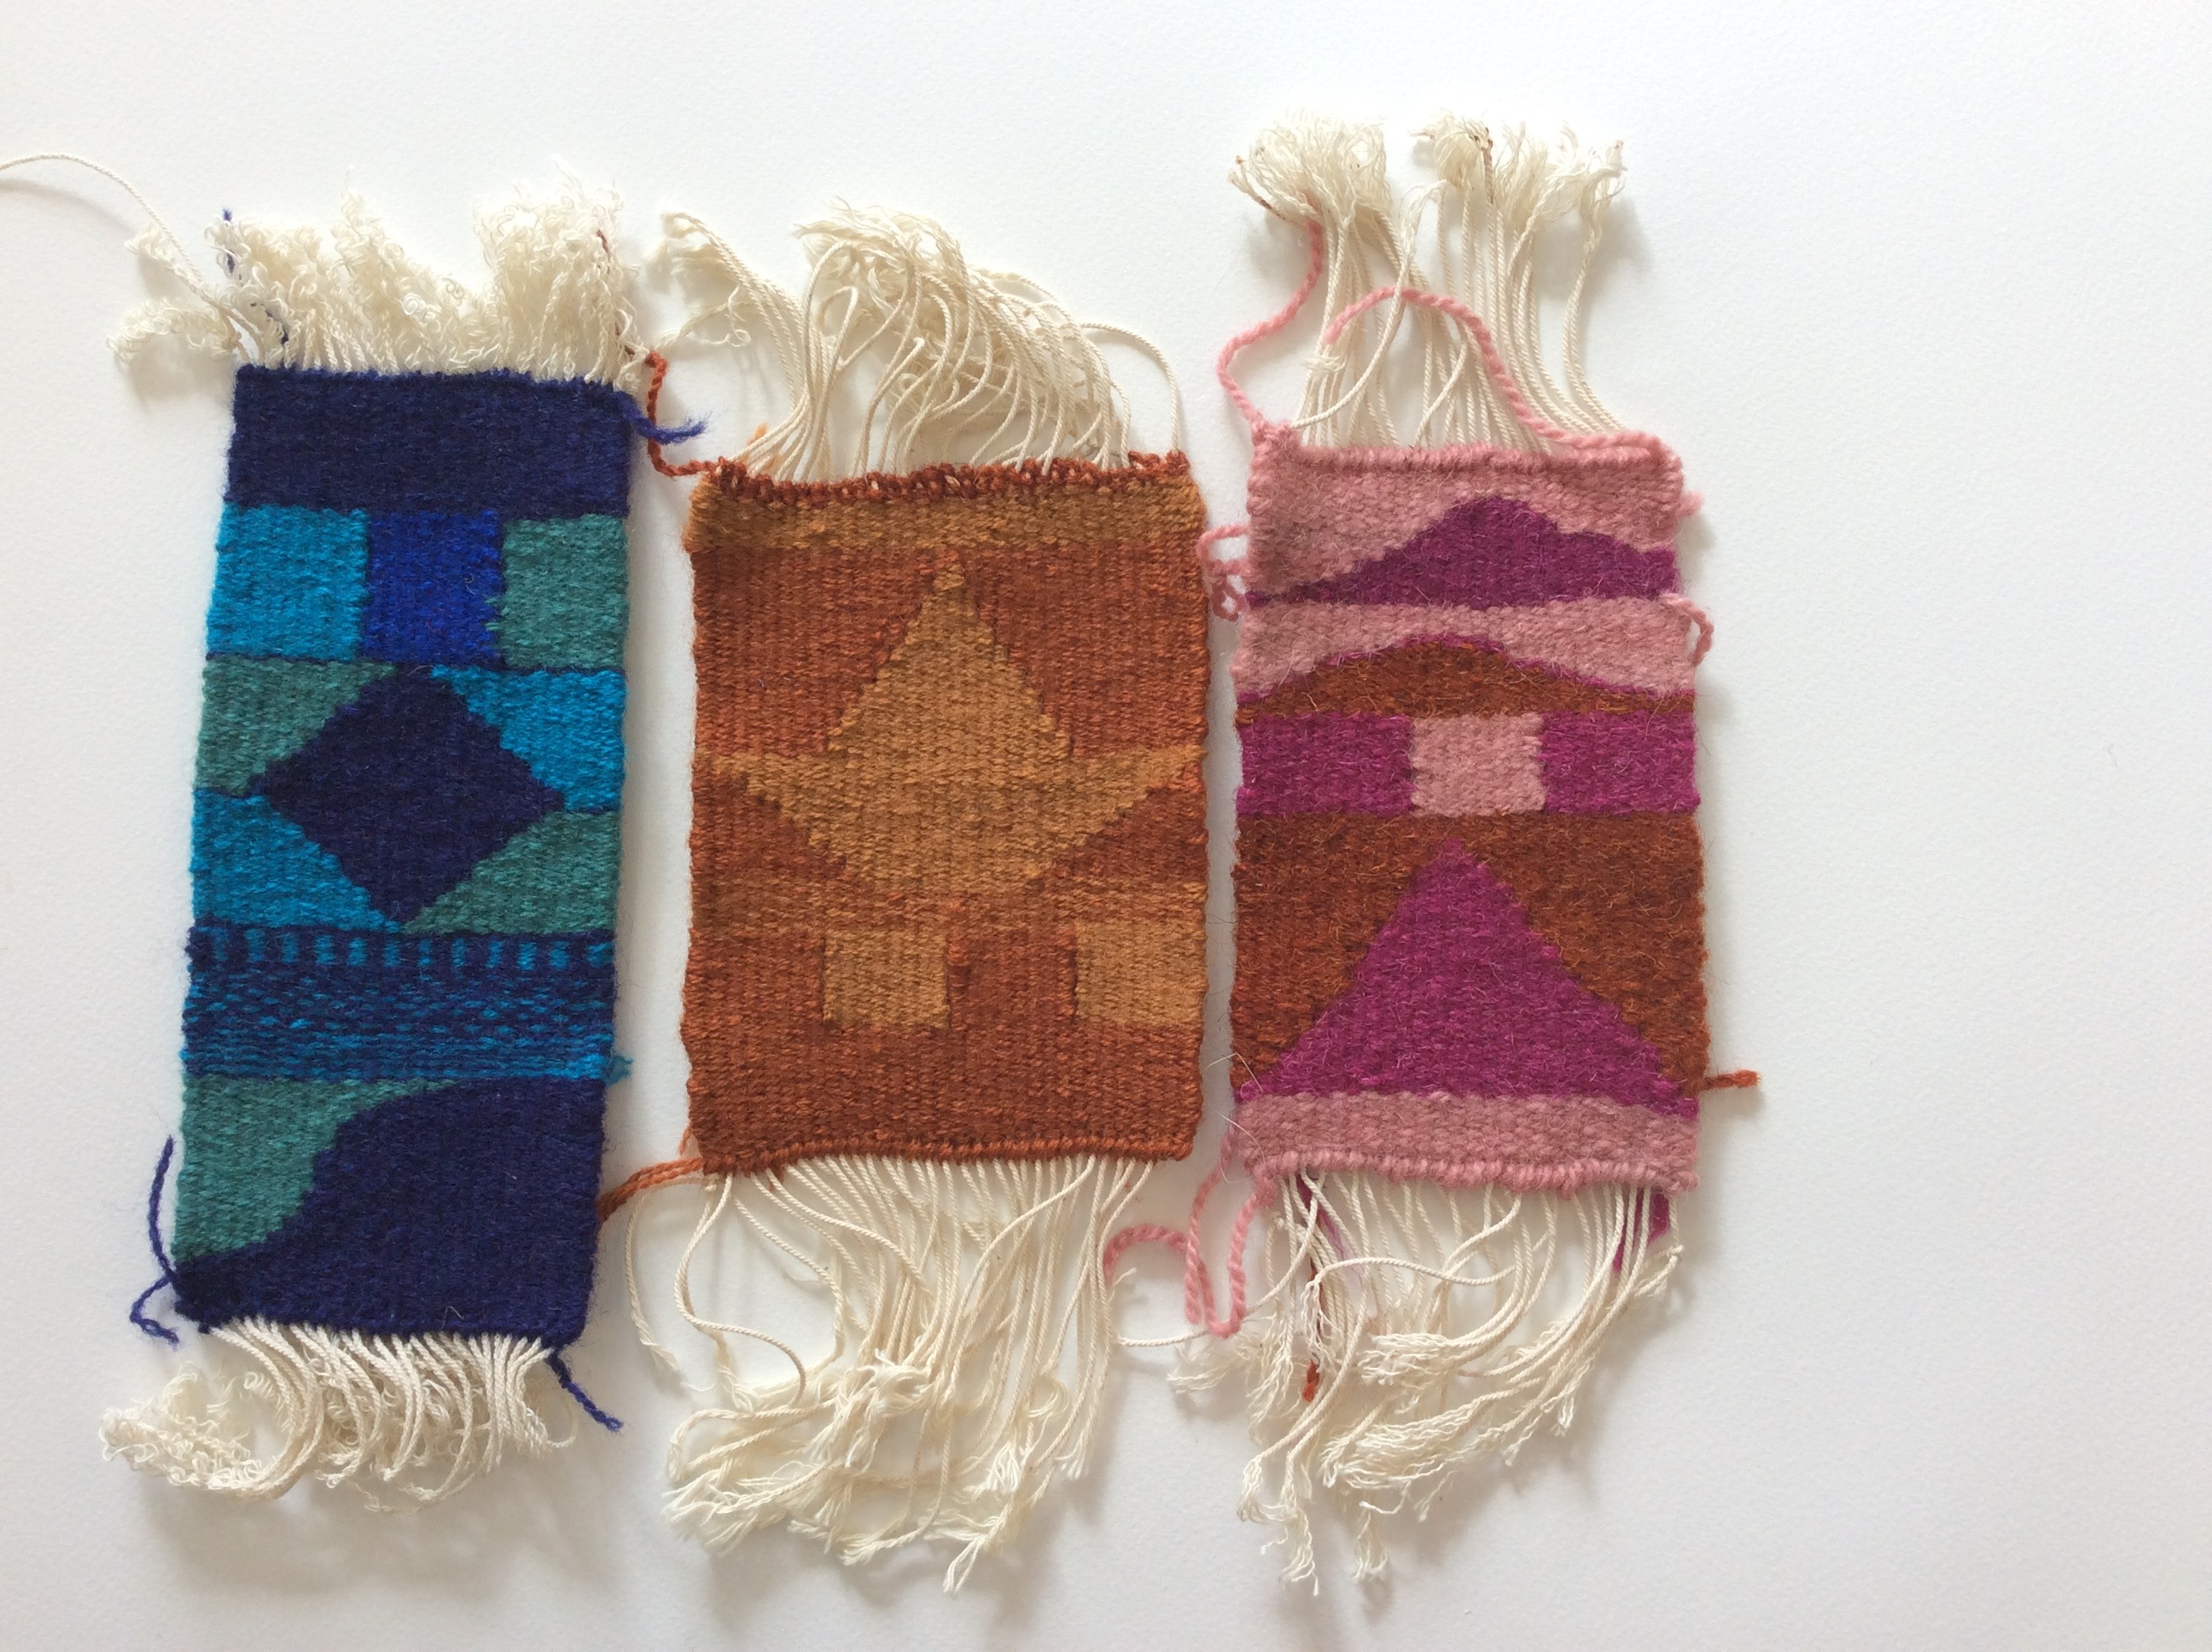 Introduction to tapestry weaving 19th – 20th January 2019